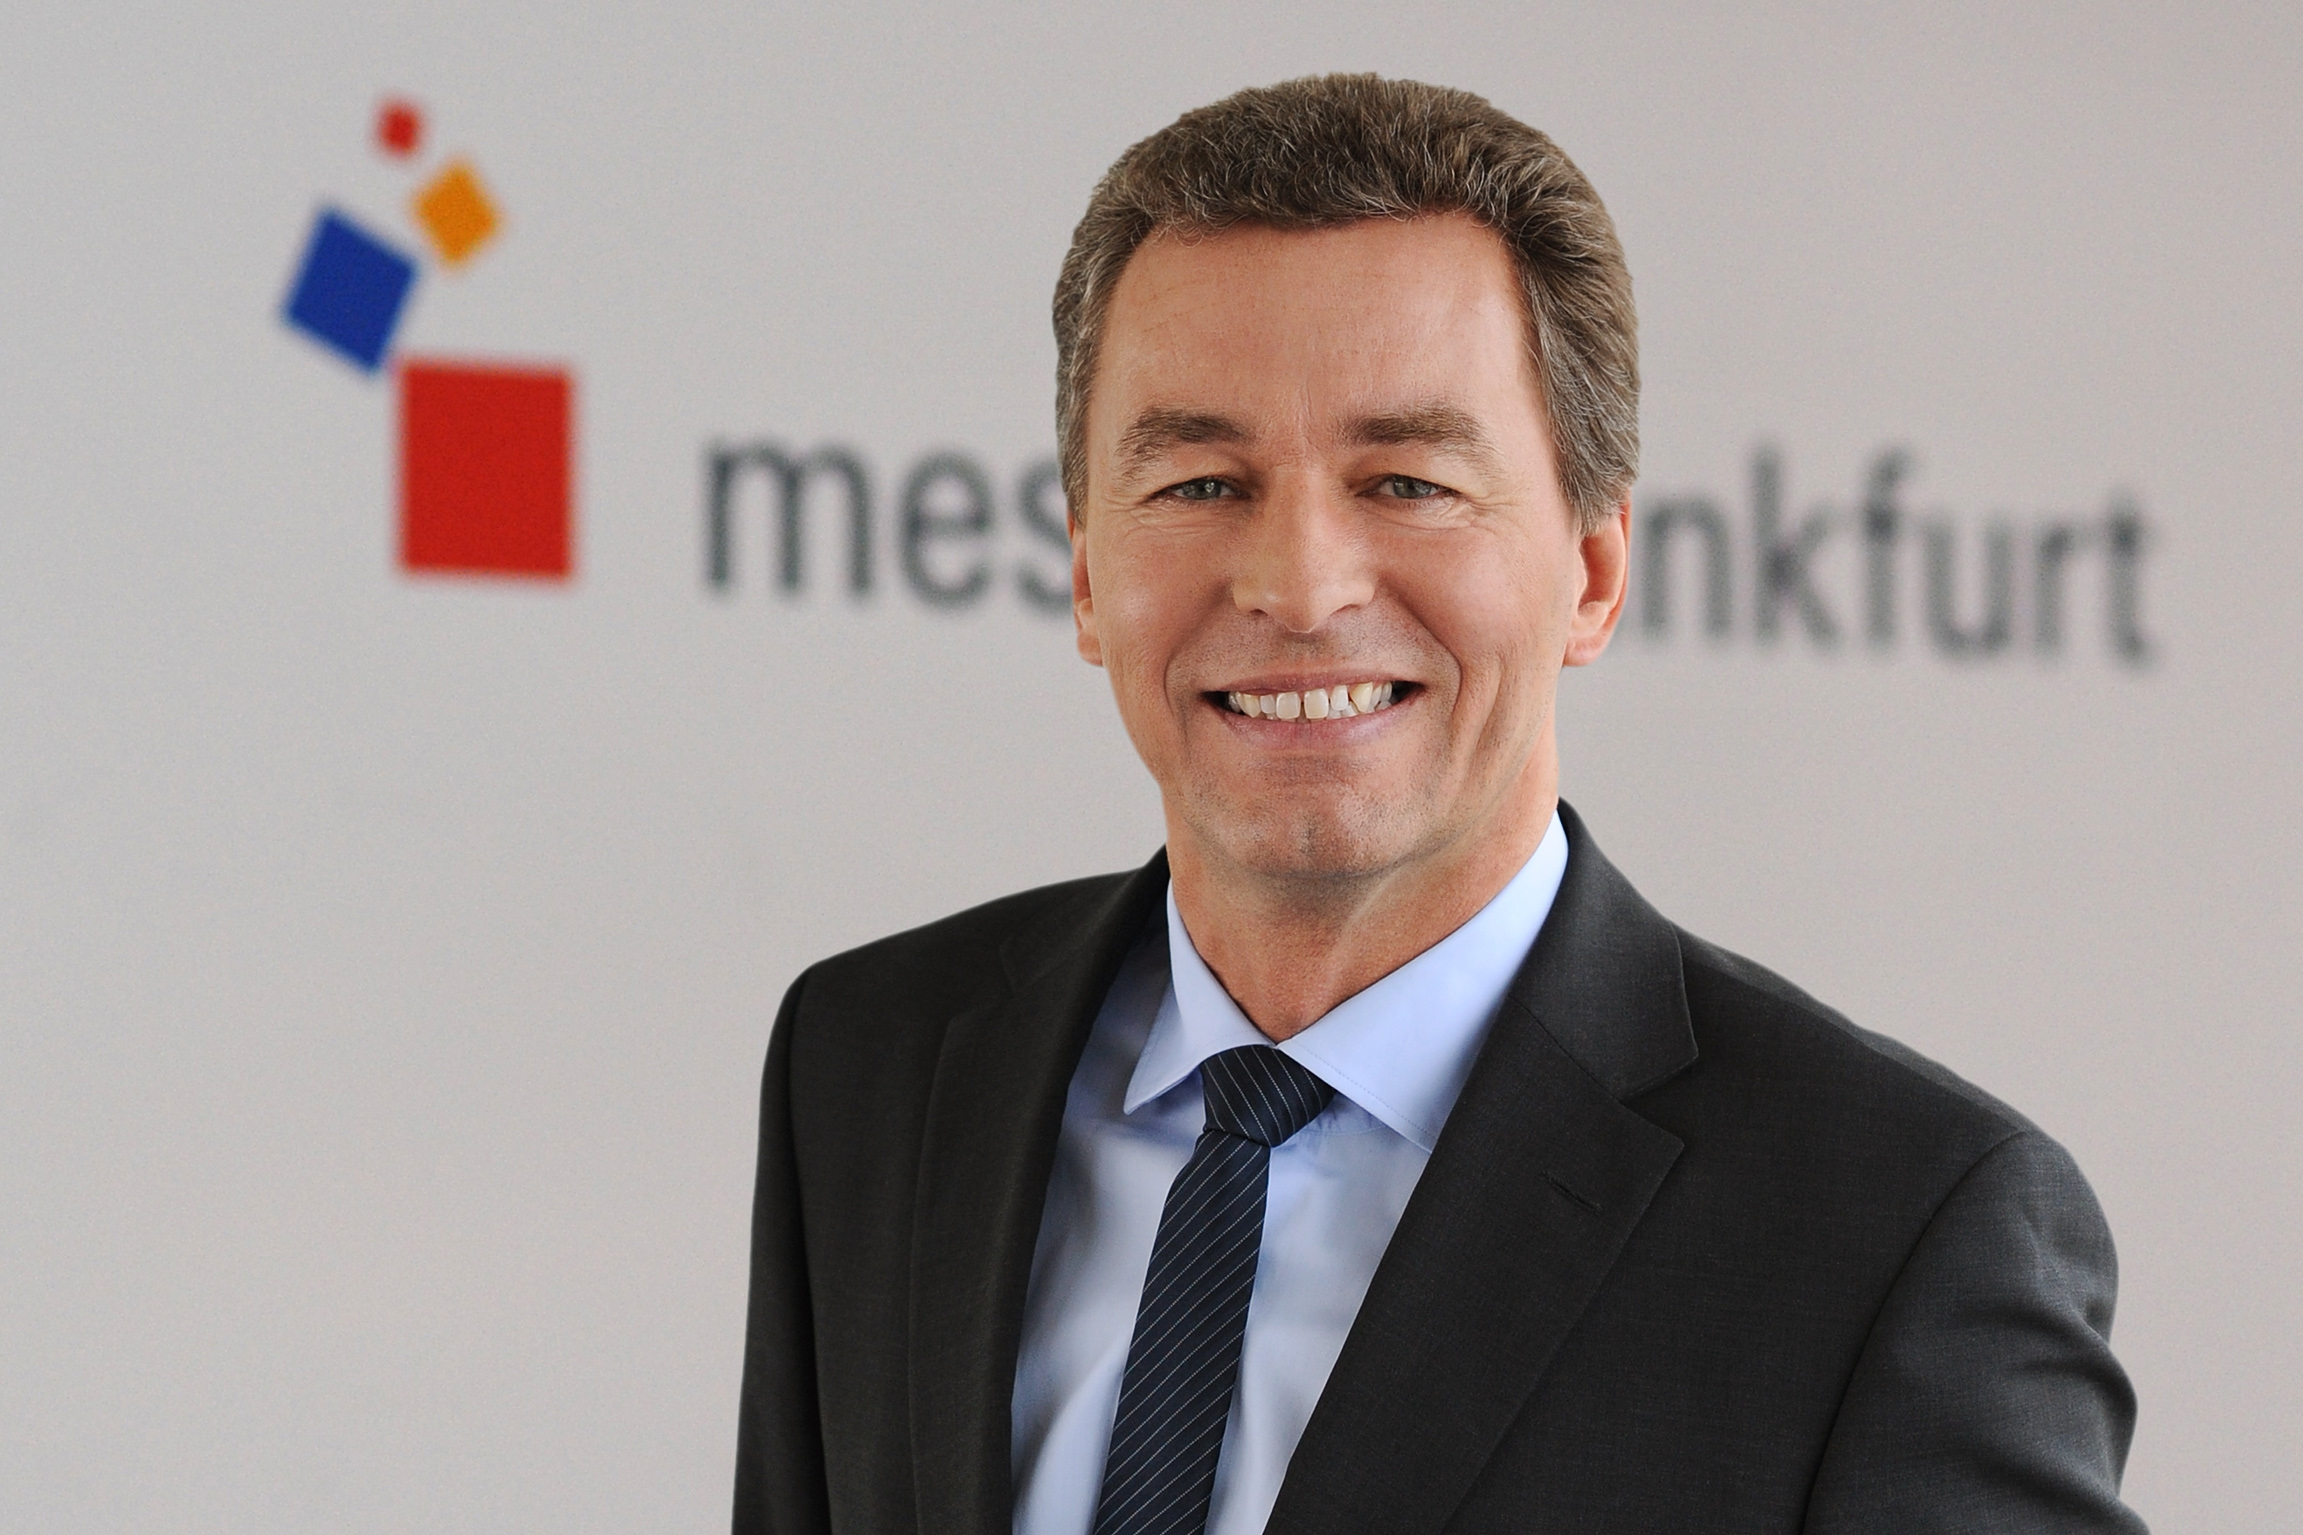 Detlef Braun, Member of the Executive Board of Messe Frankfurt GmbH